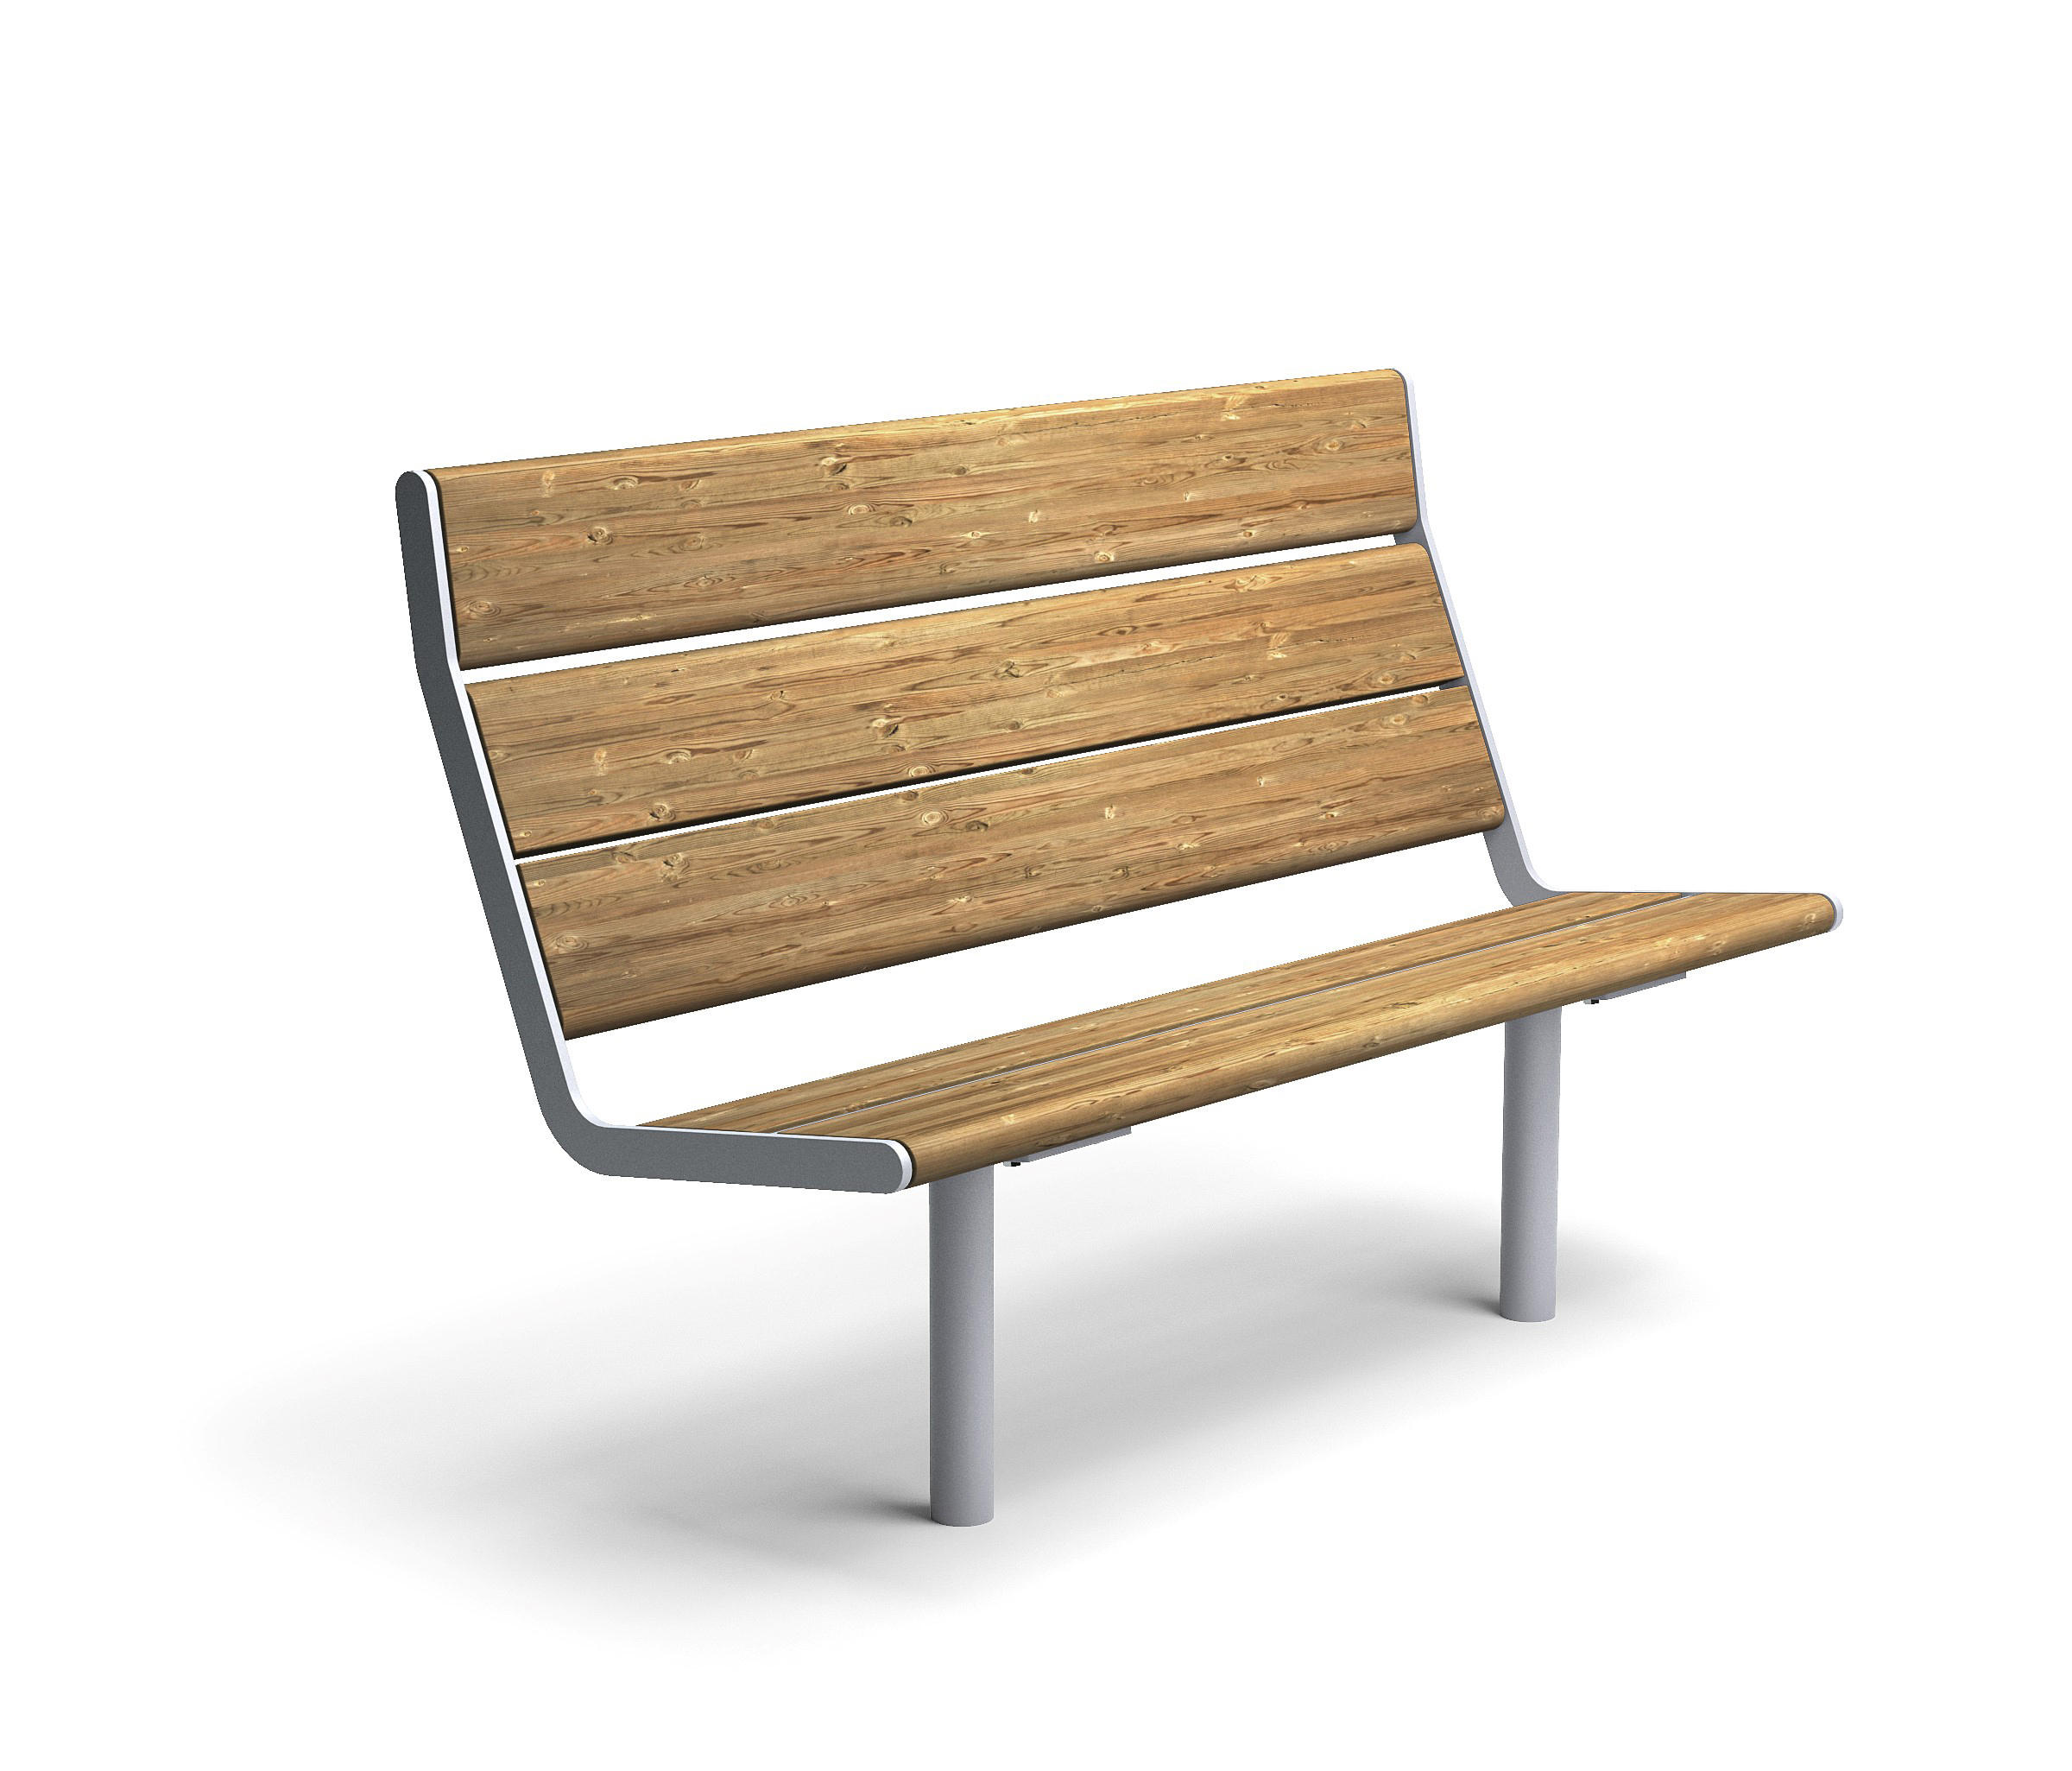 APRIL BENCH Exterior benches from Vestre Architonic